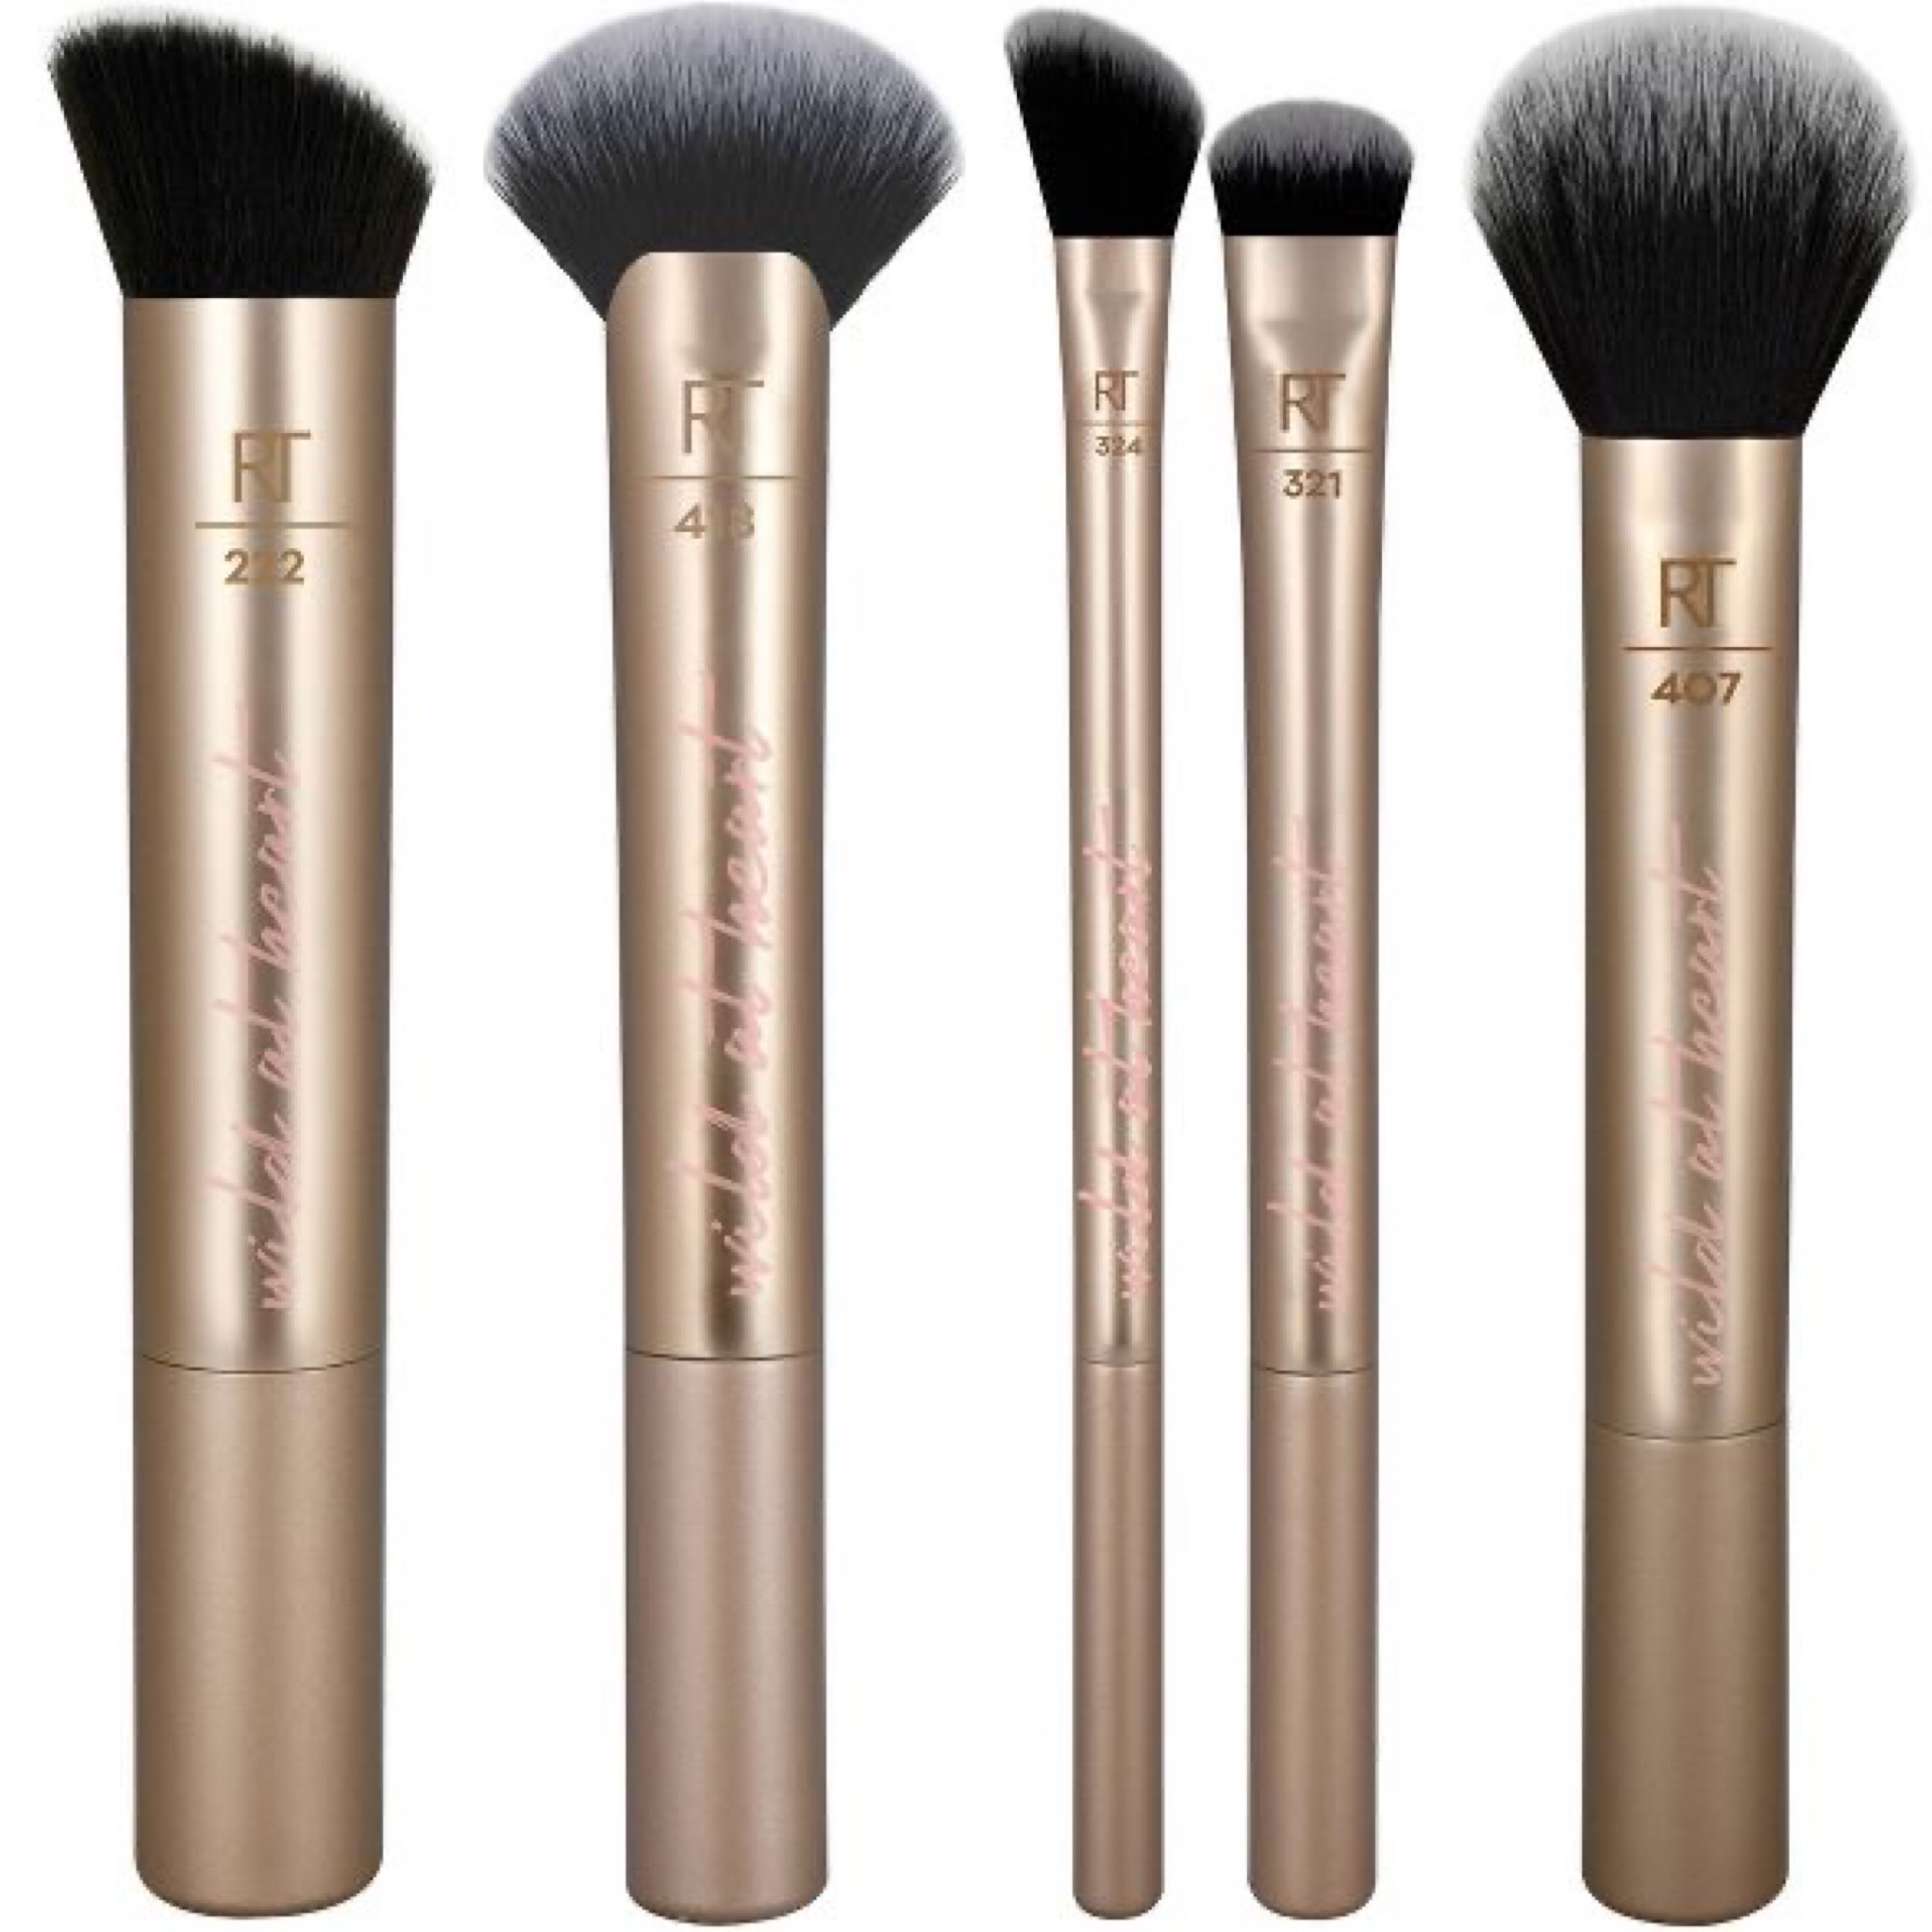 Real Techniques Animalista Brush Collection